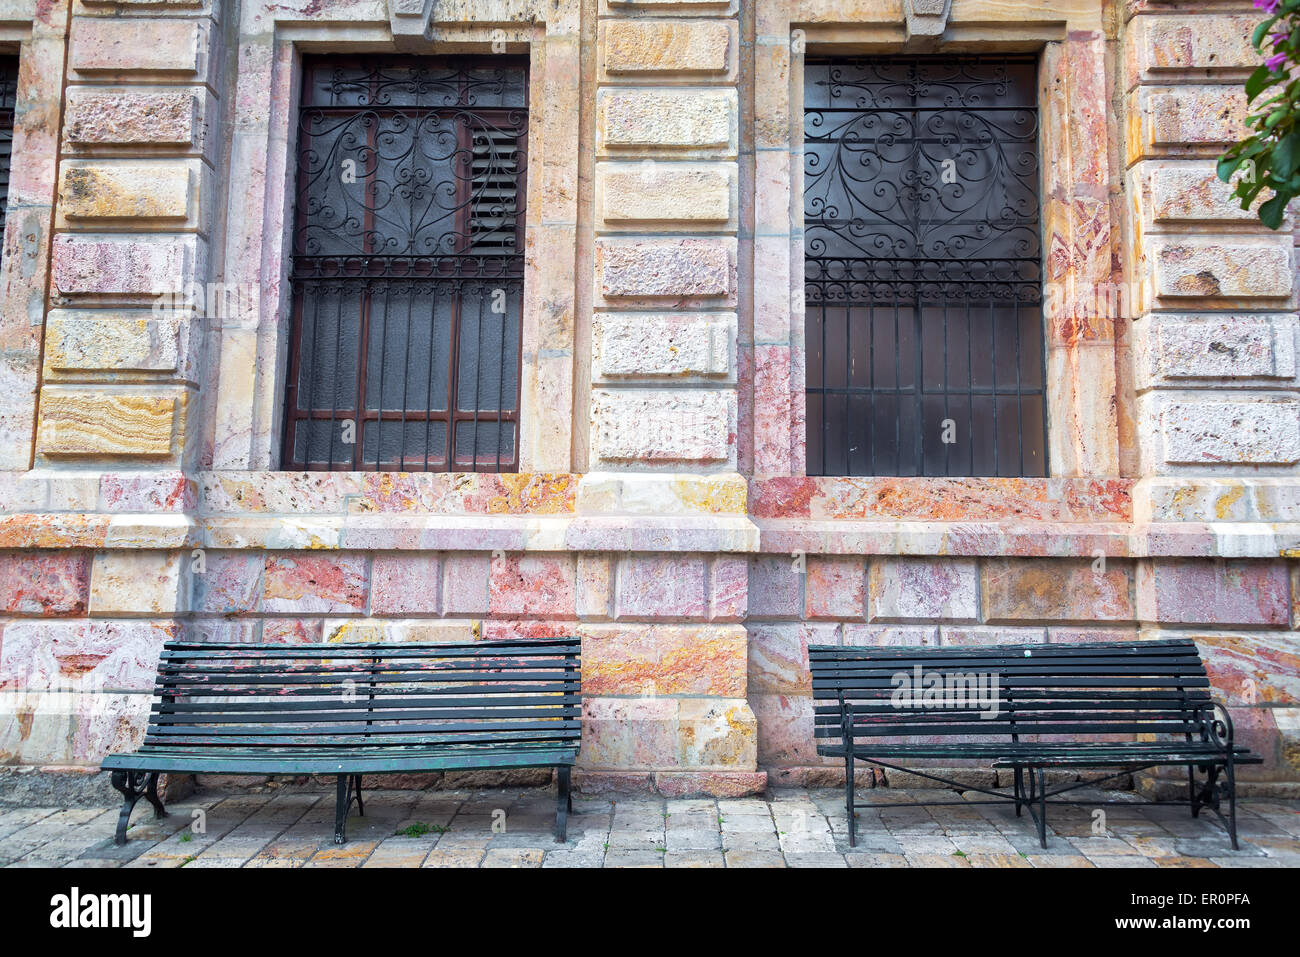 Historic building and benches in Cuenca, Ecuador - Stock Image